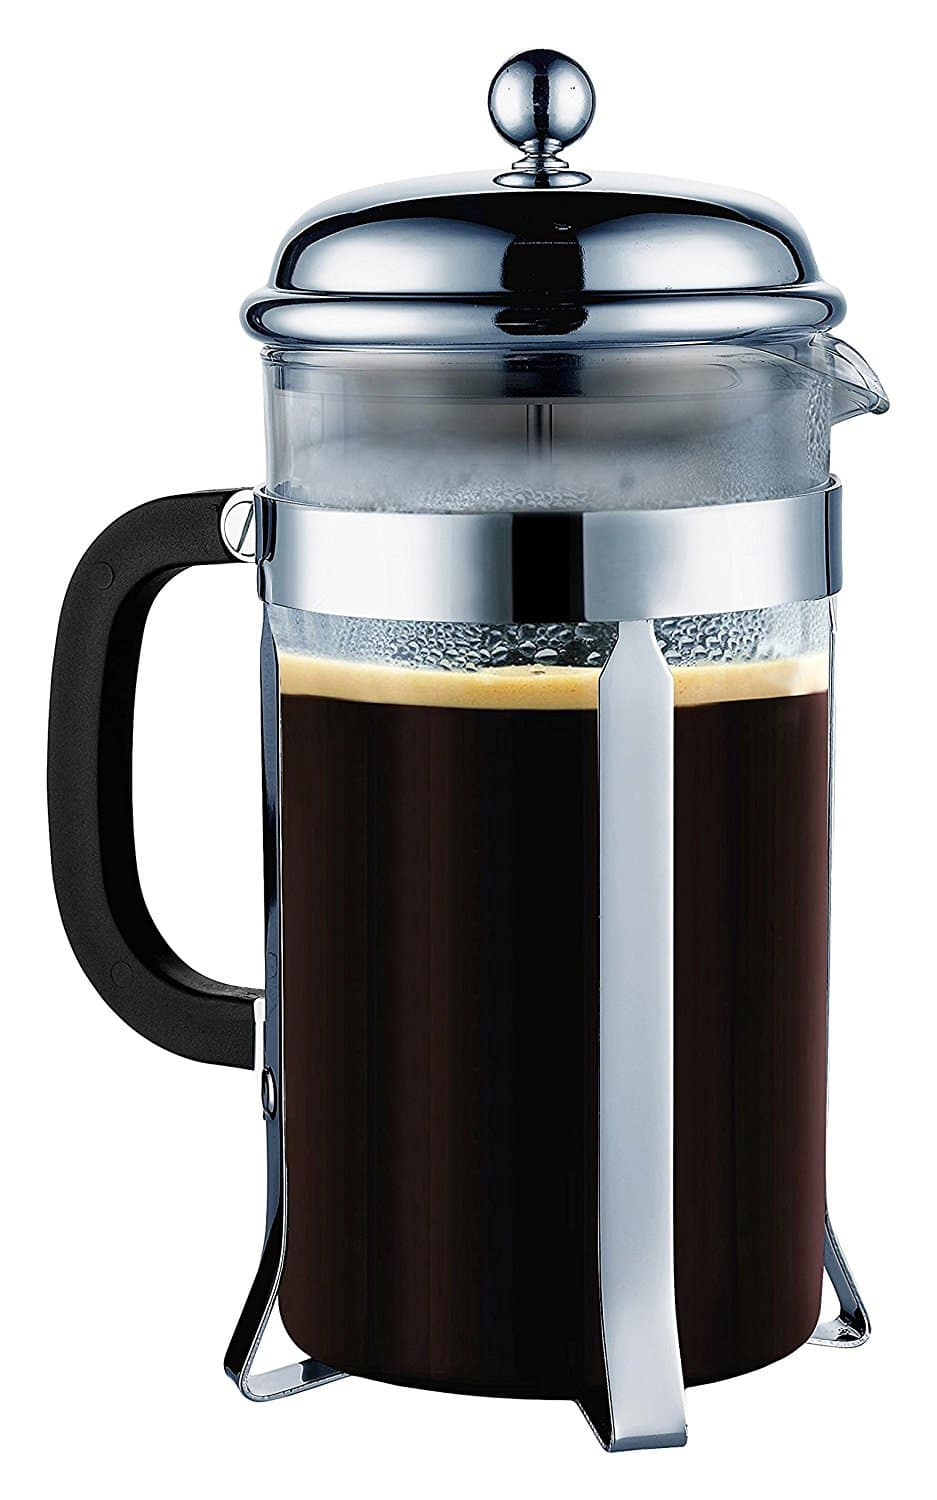 Over 40% off--SterlingPro French Coffee Press(Chrome, 1L) Only $15.58(FREE shipping with Prime)